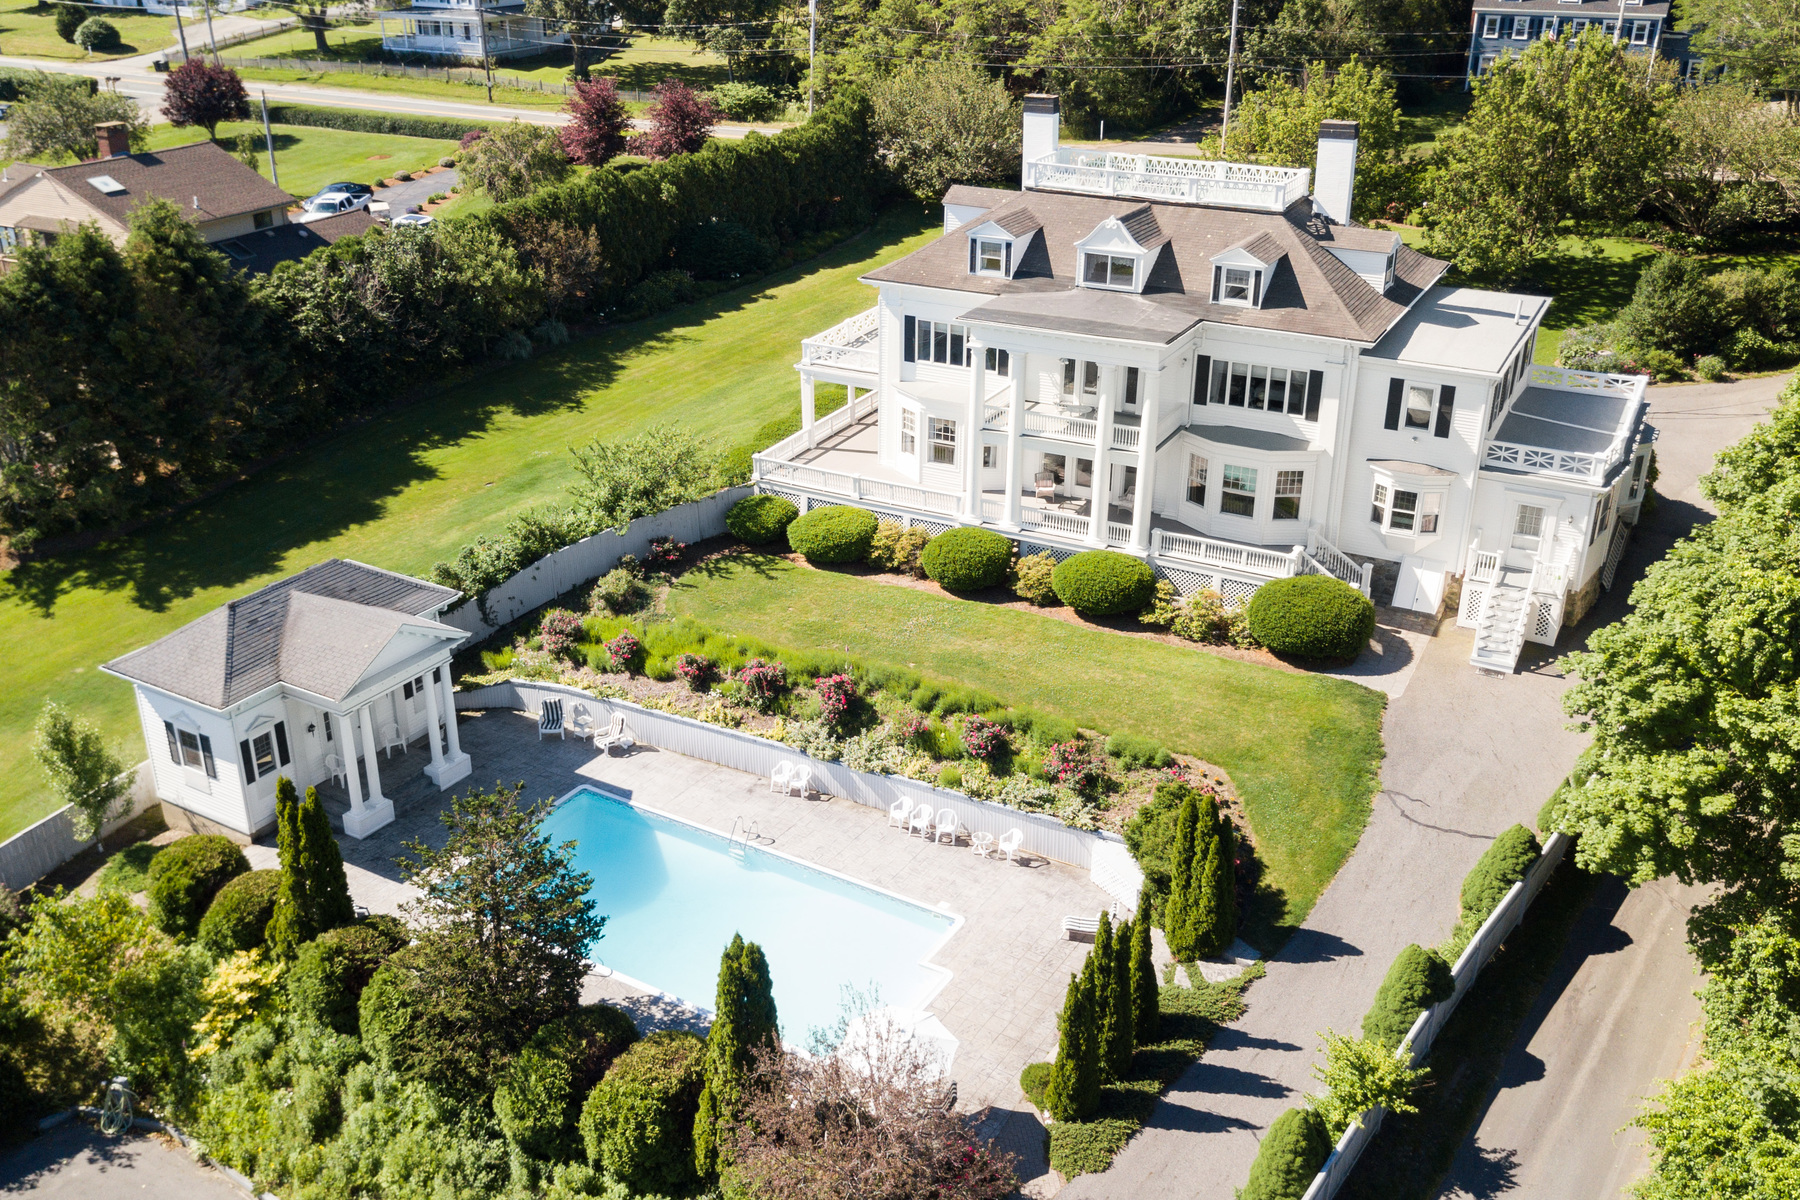 Villa per Vendita alle ore 72 Warren Avenue Plymouth, Massachusetts, 02360 Stati Uniti